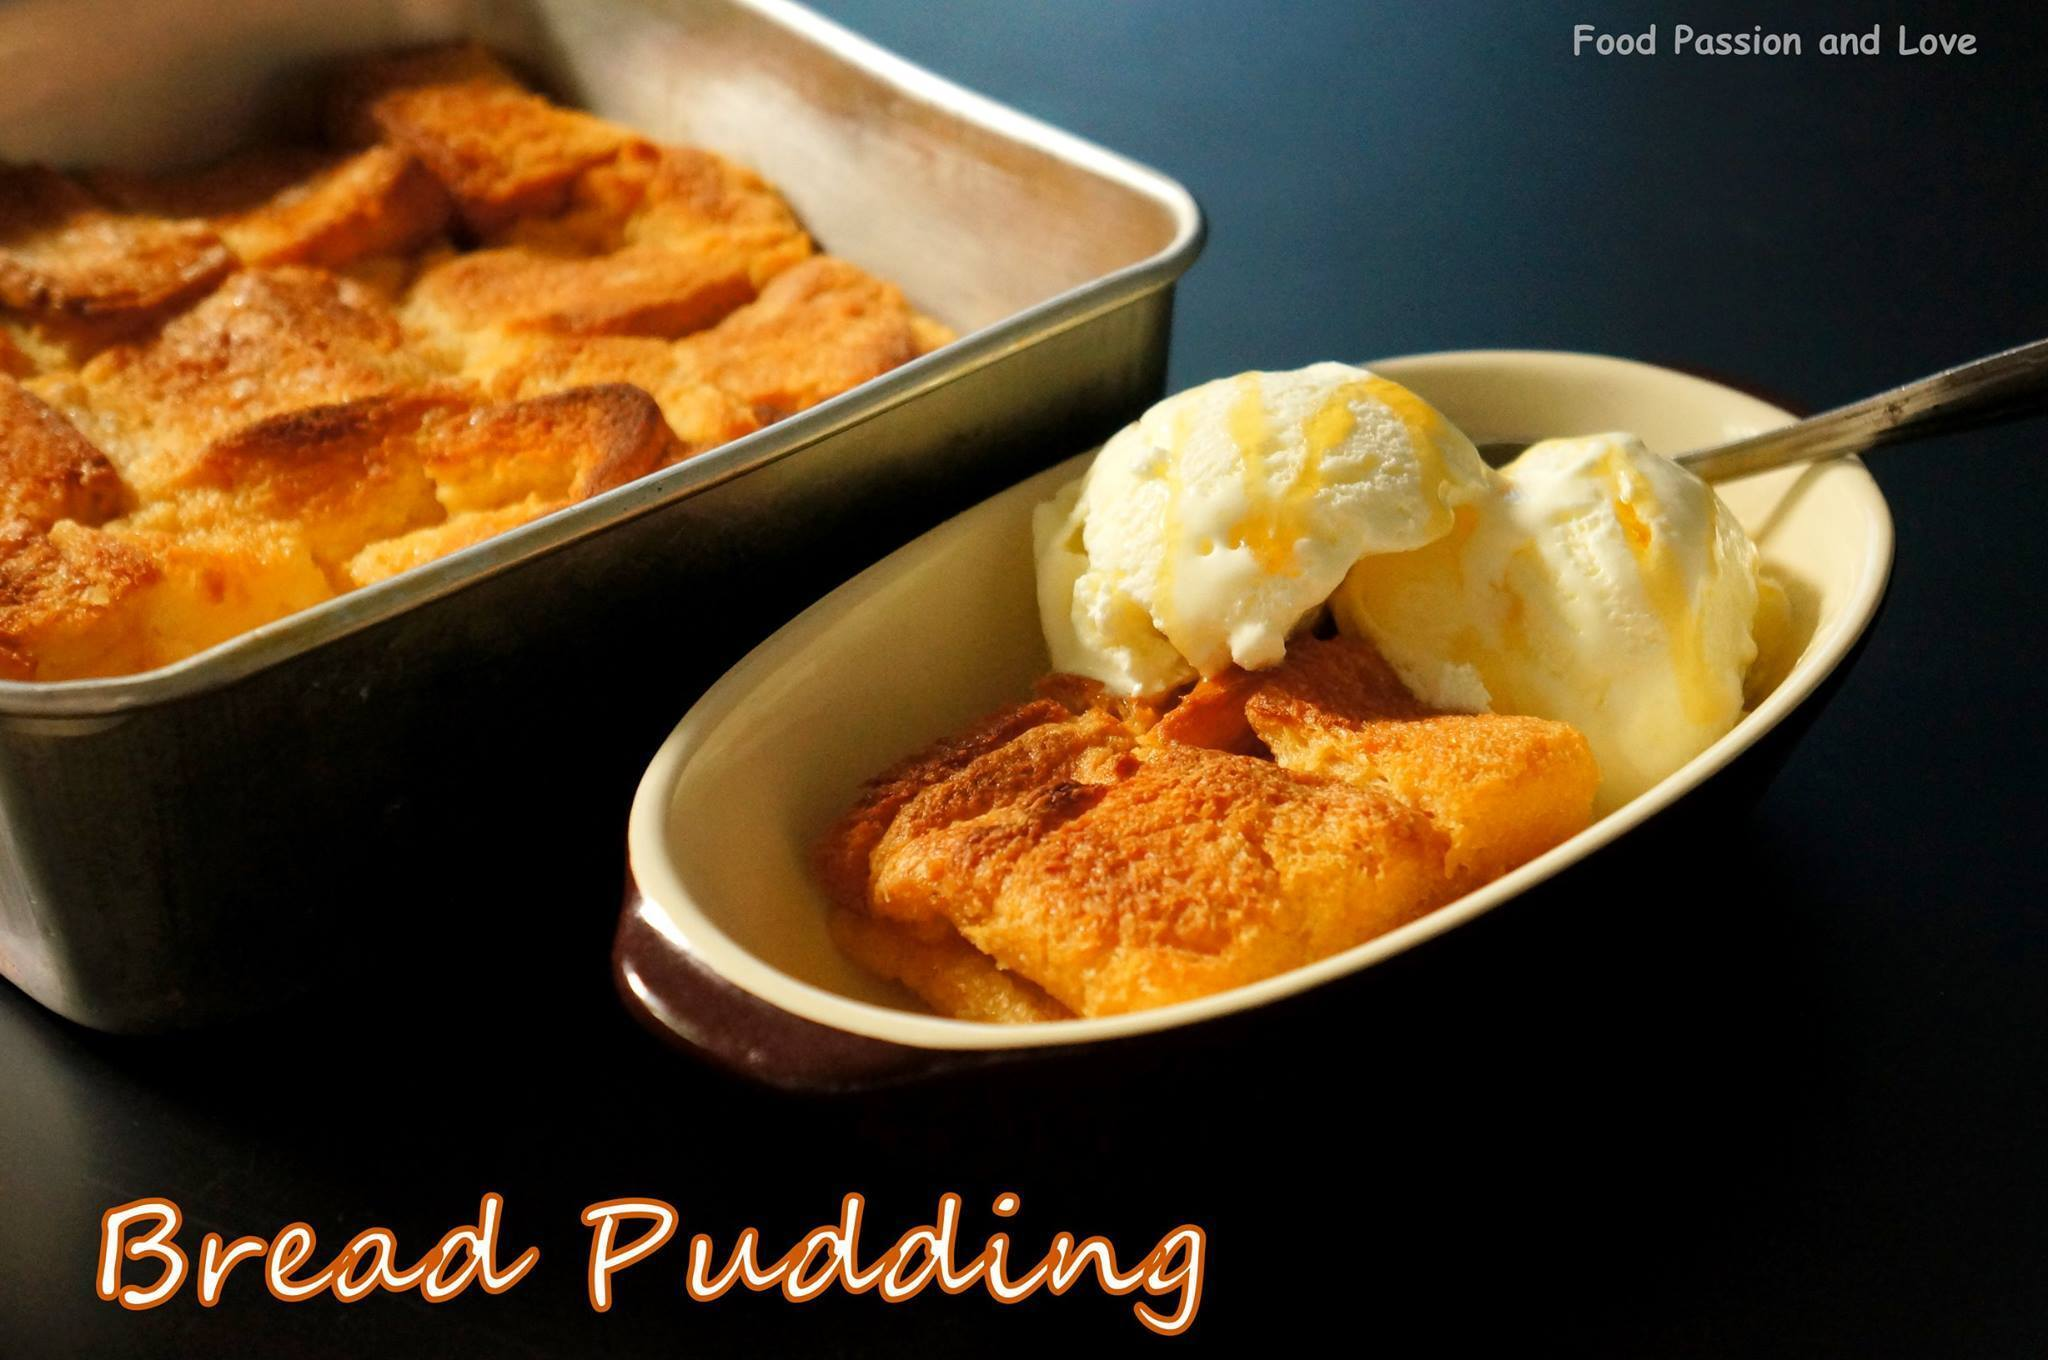 BAKED EGGLESS BREAD PUDDING